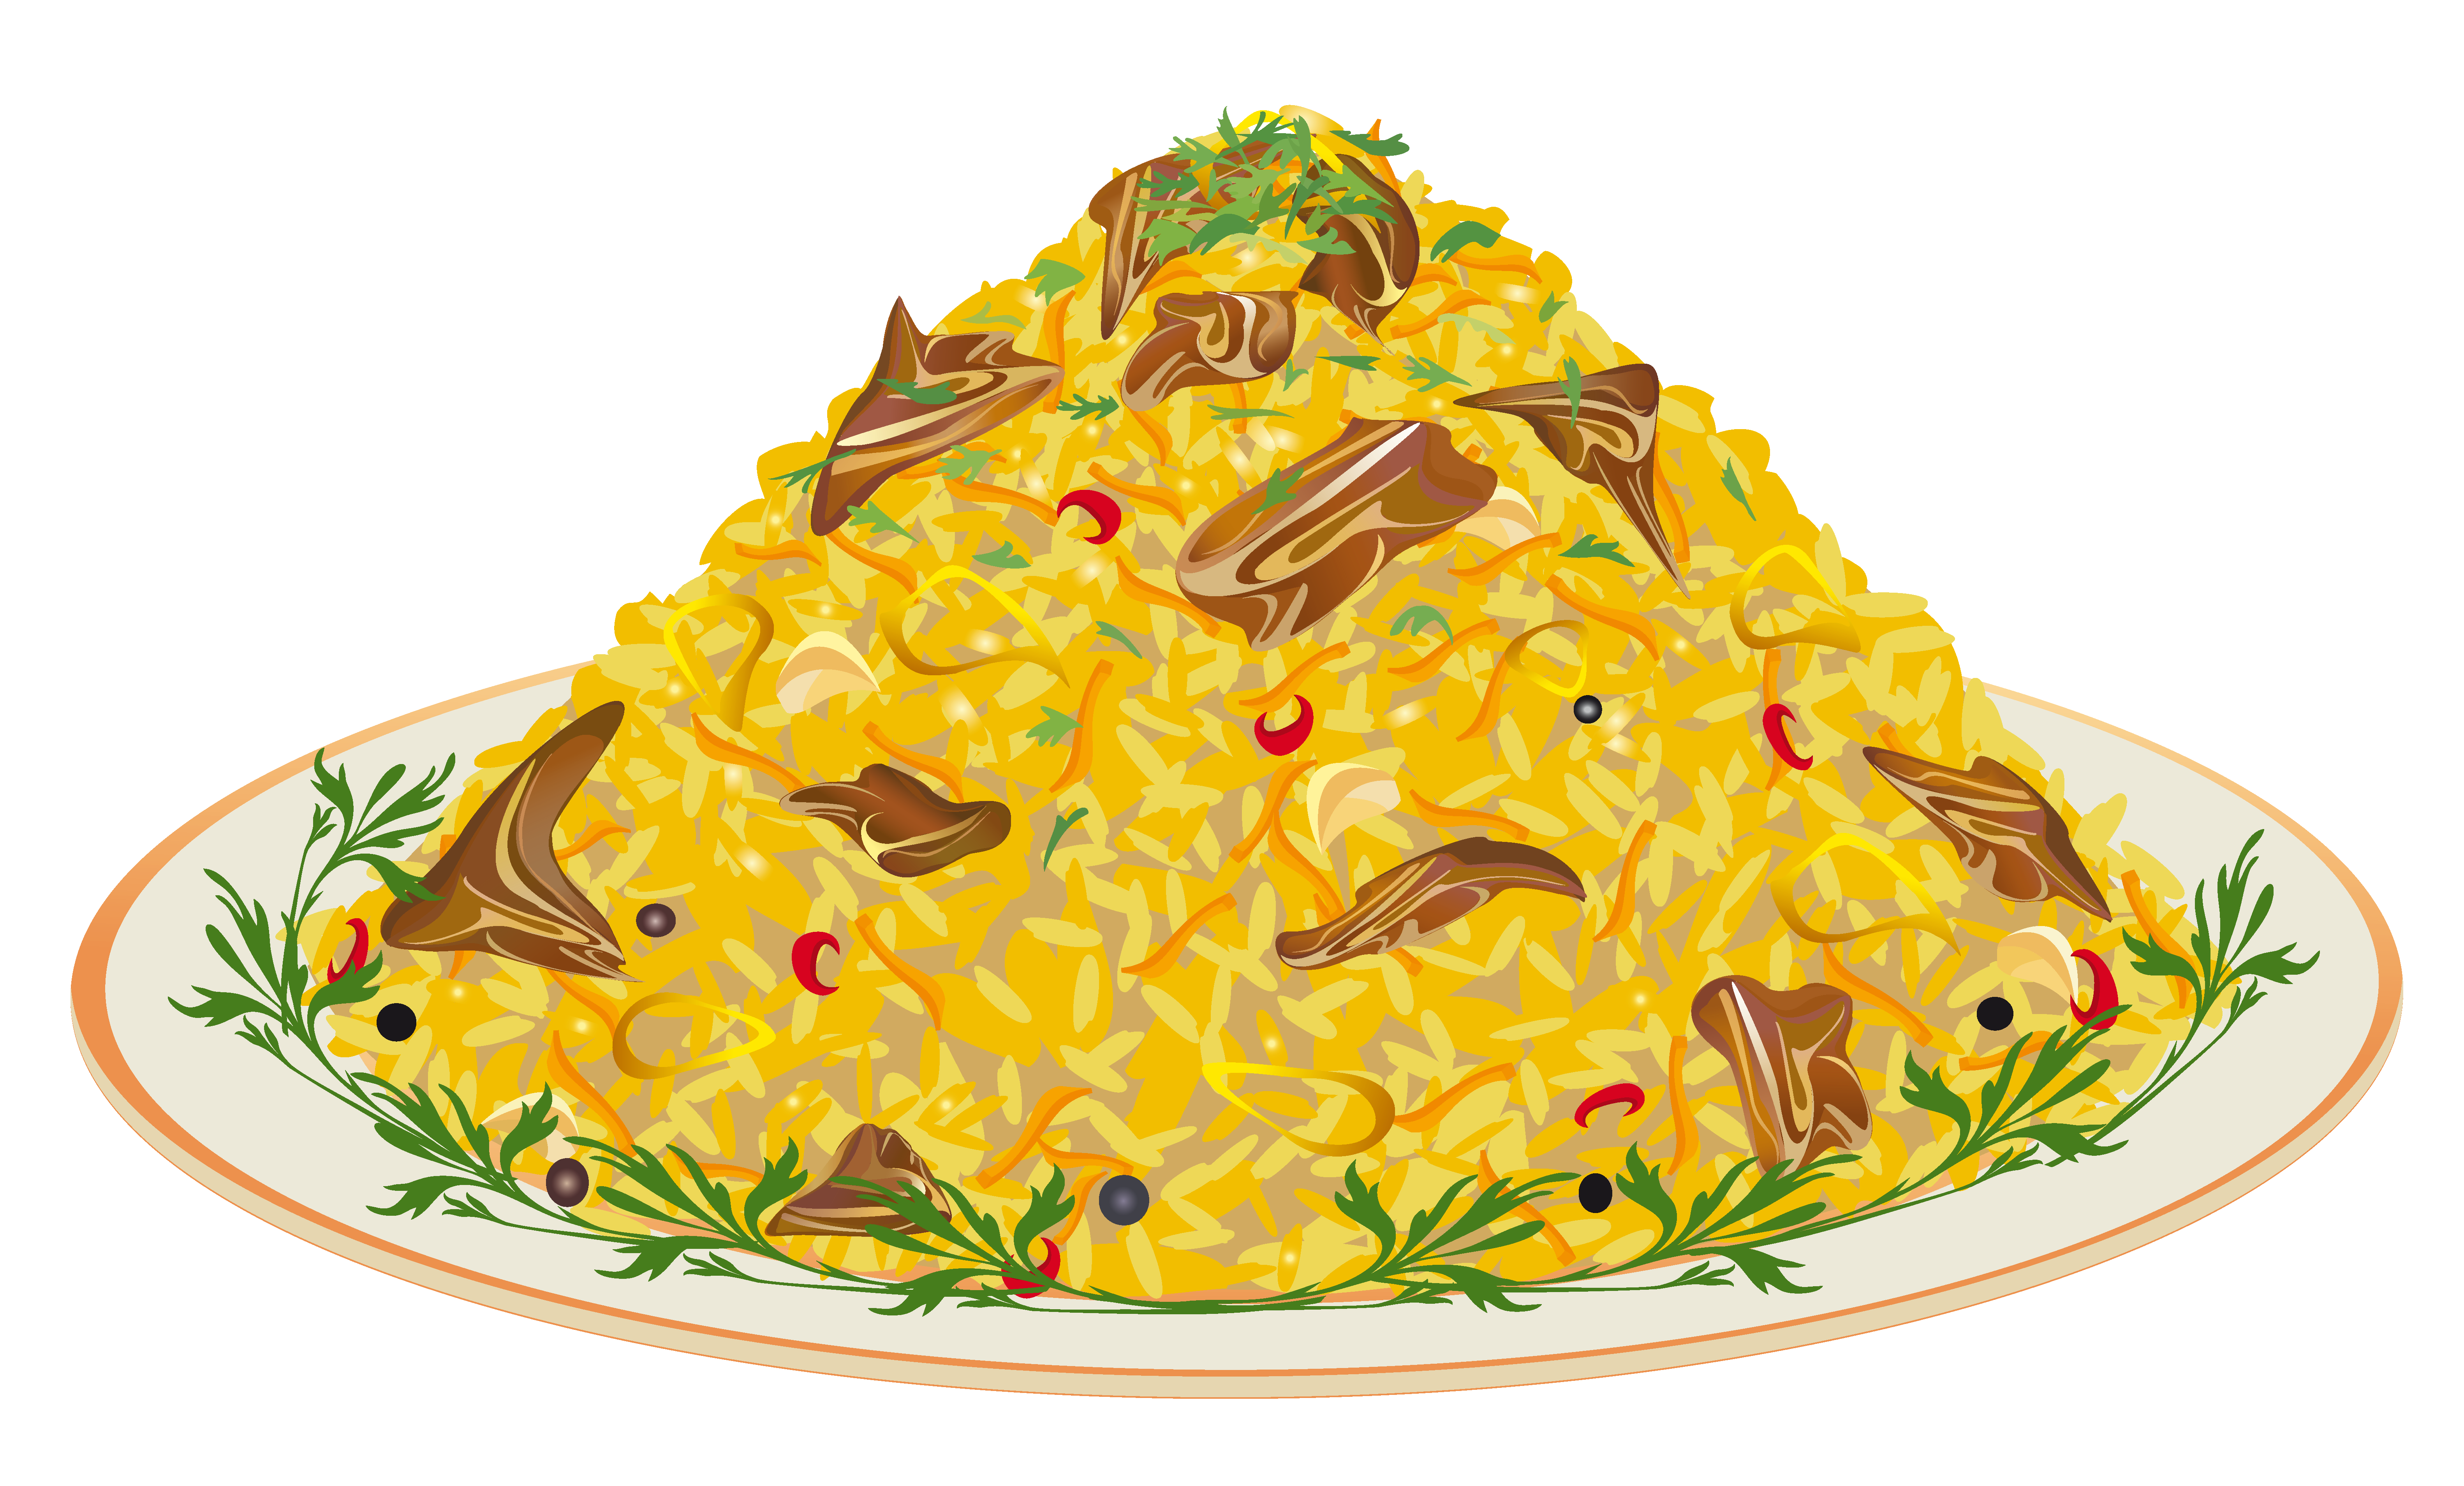 Foods clipart frame.  collection of dishes